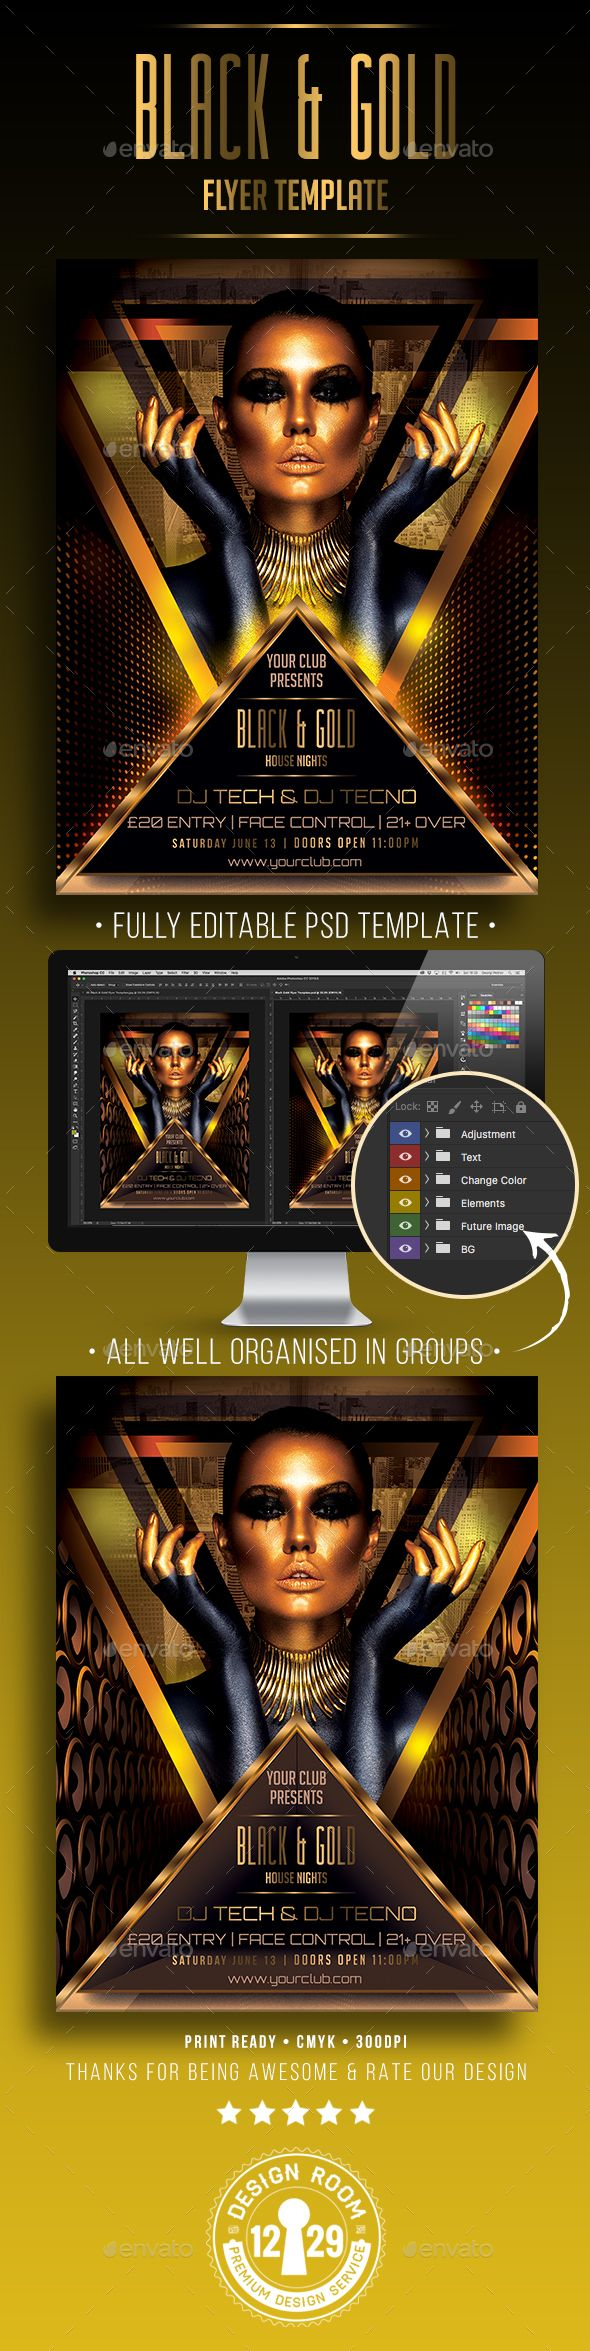 Black & Gold Flyer Template - Clubs & Parties Events